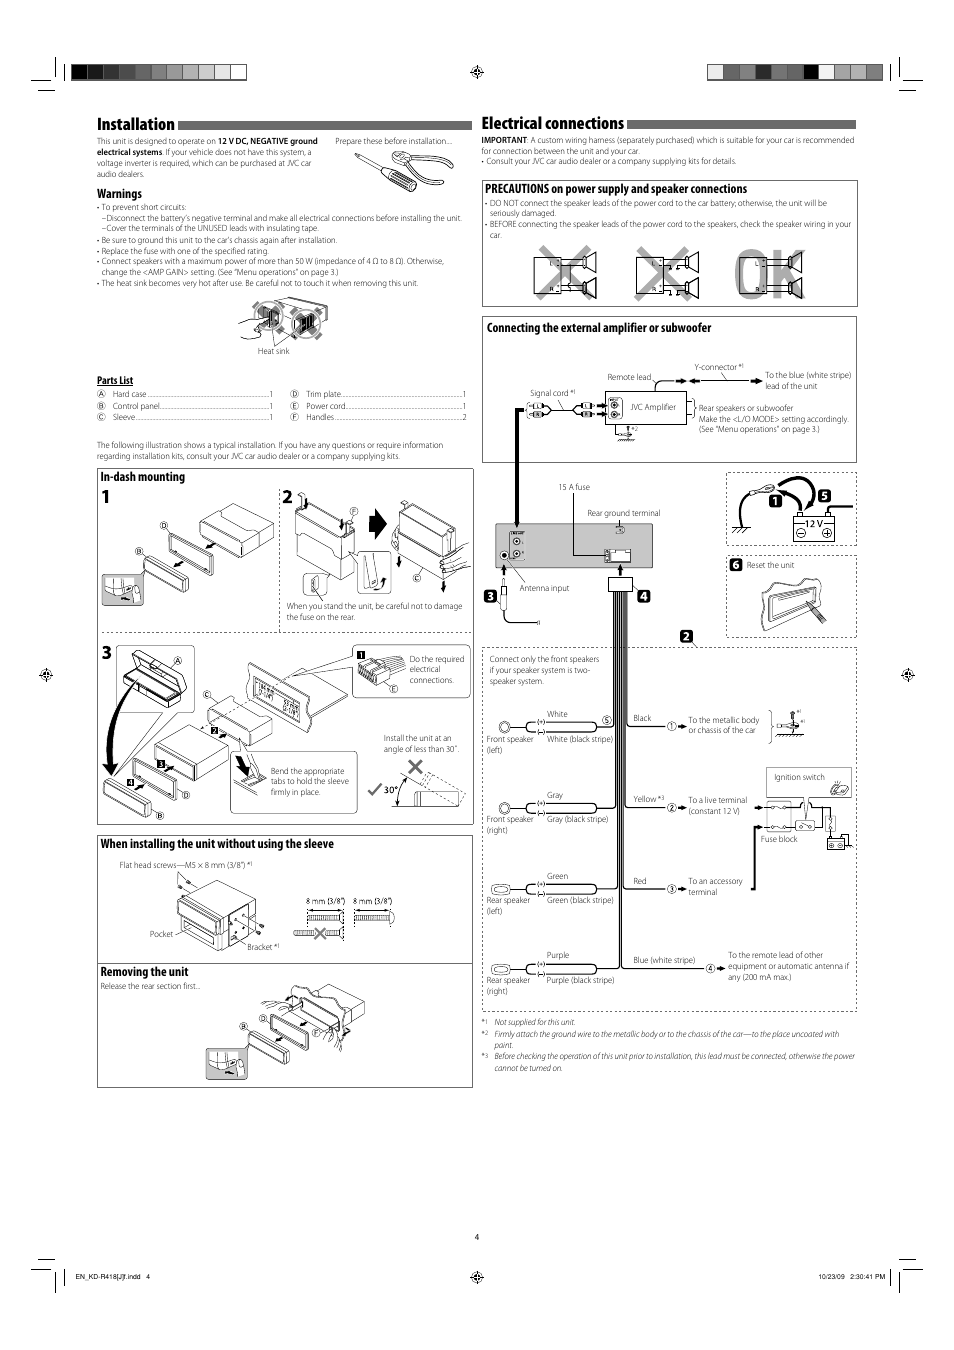 Installation, Electrical connections, Warnings | Connecting the external  amplifier or subwoofer, Parts list